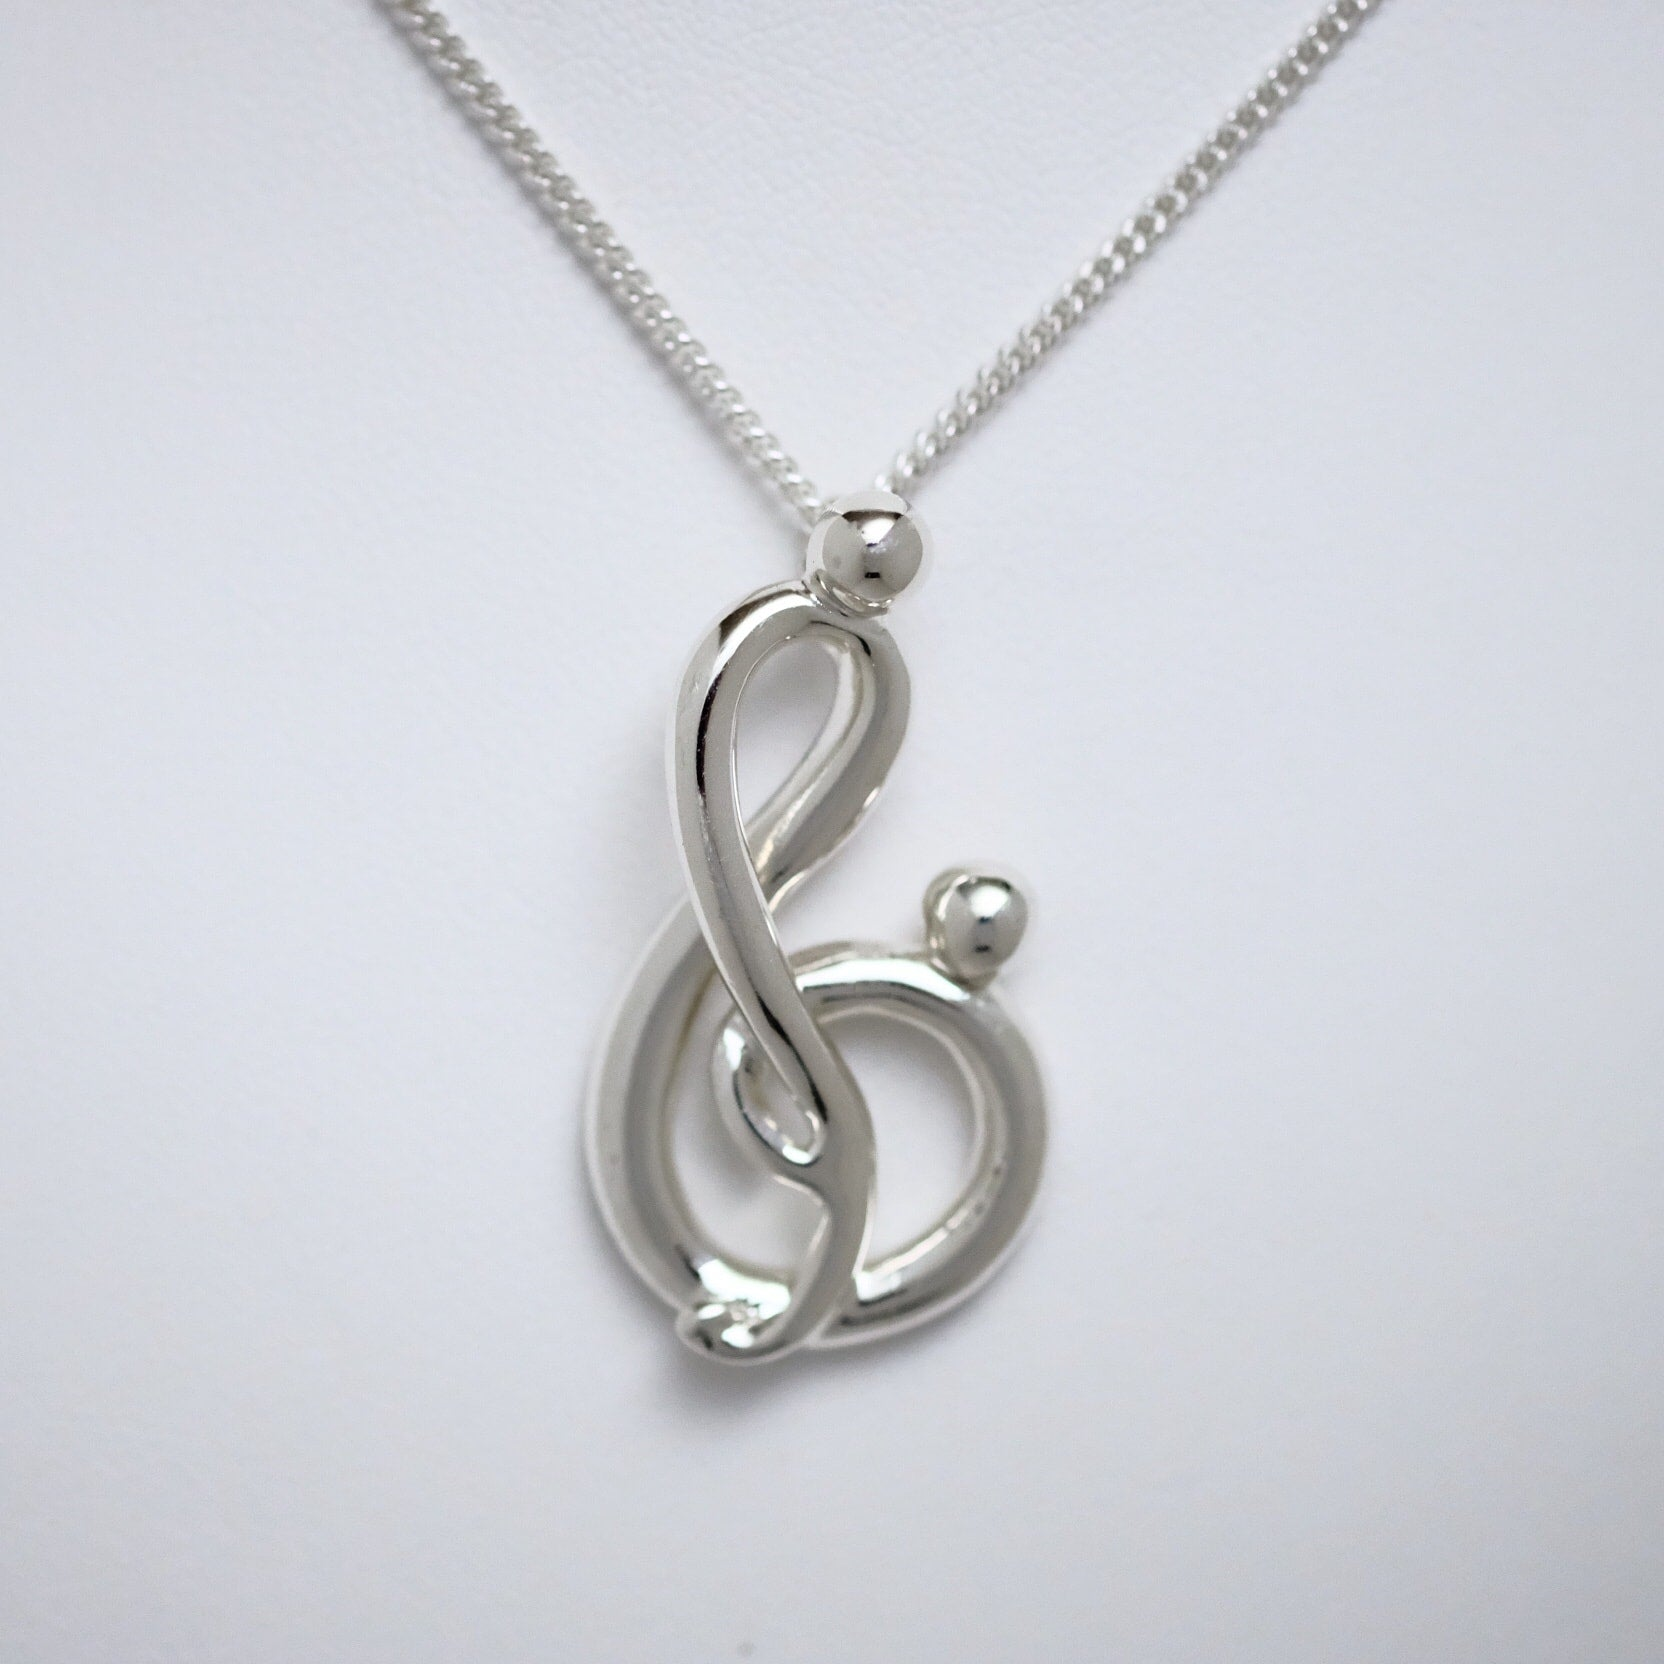 Melody of Love large sterling silver pendant by Joseph Chiang